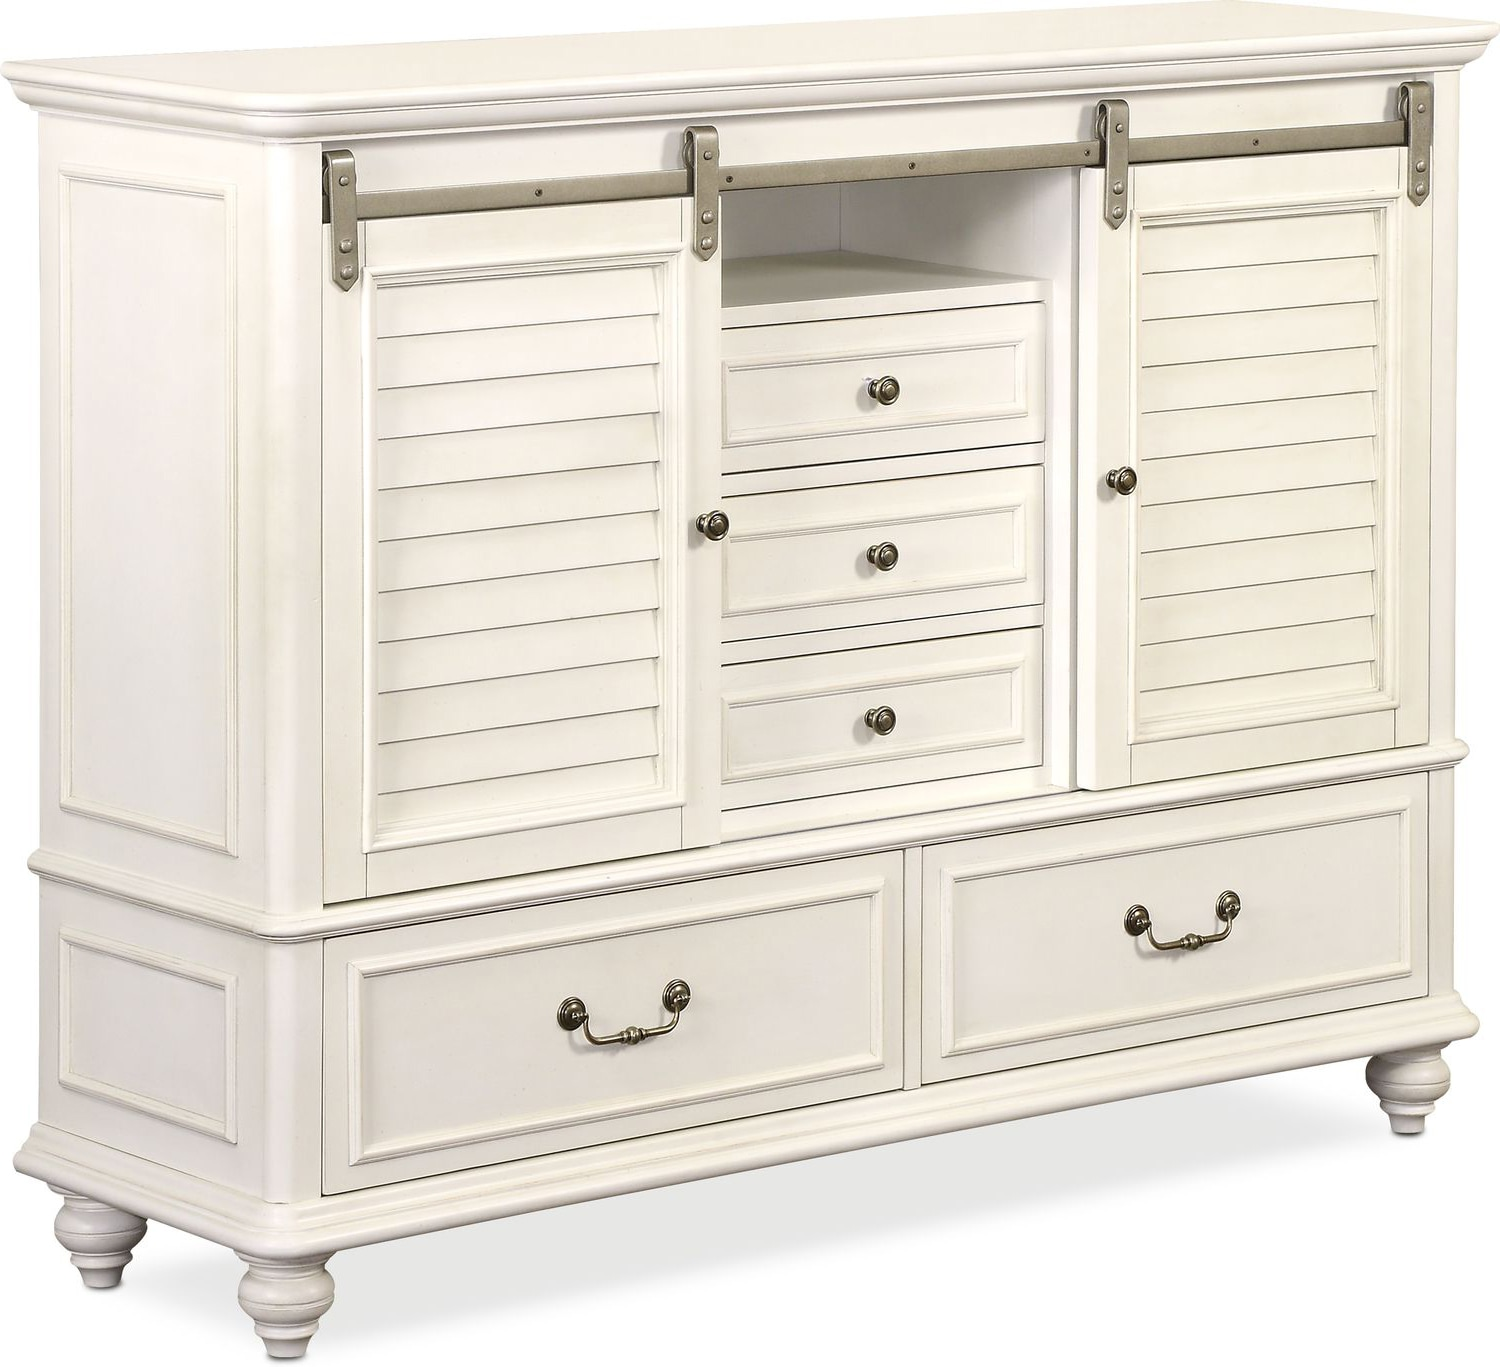 Bedroom Furniture - Charleston Sliding Door Chest